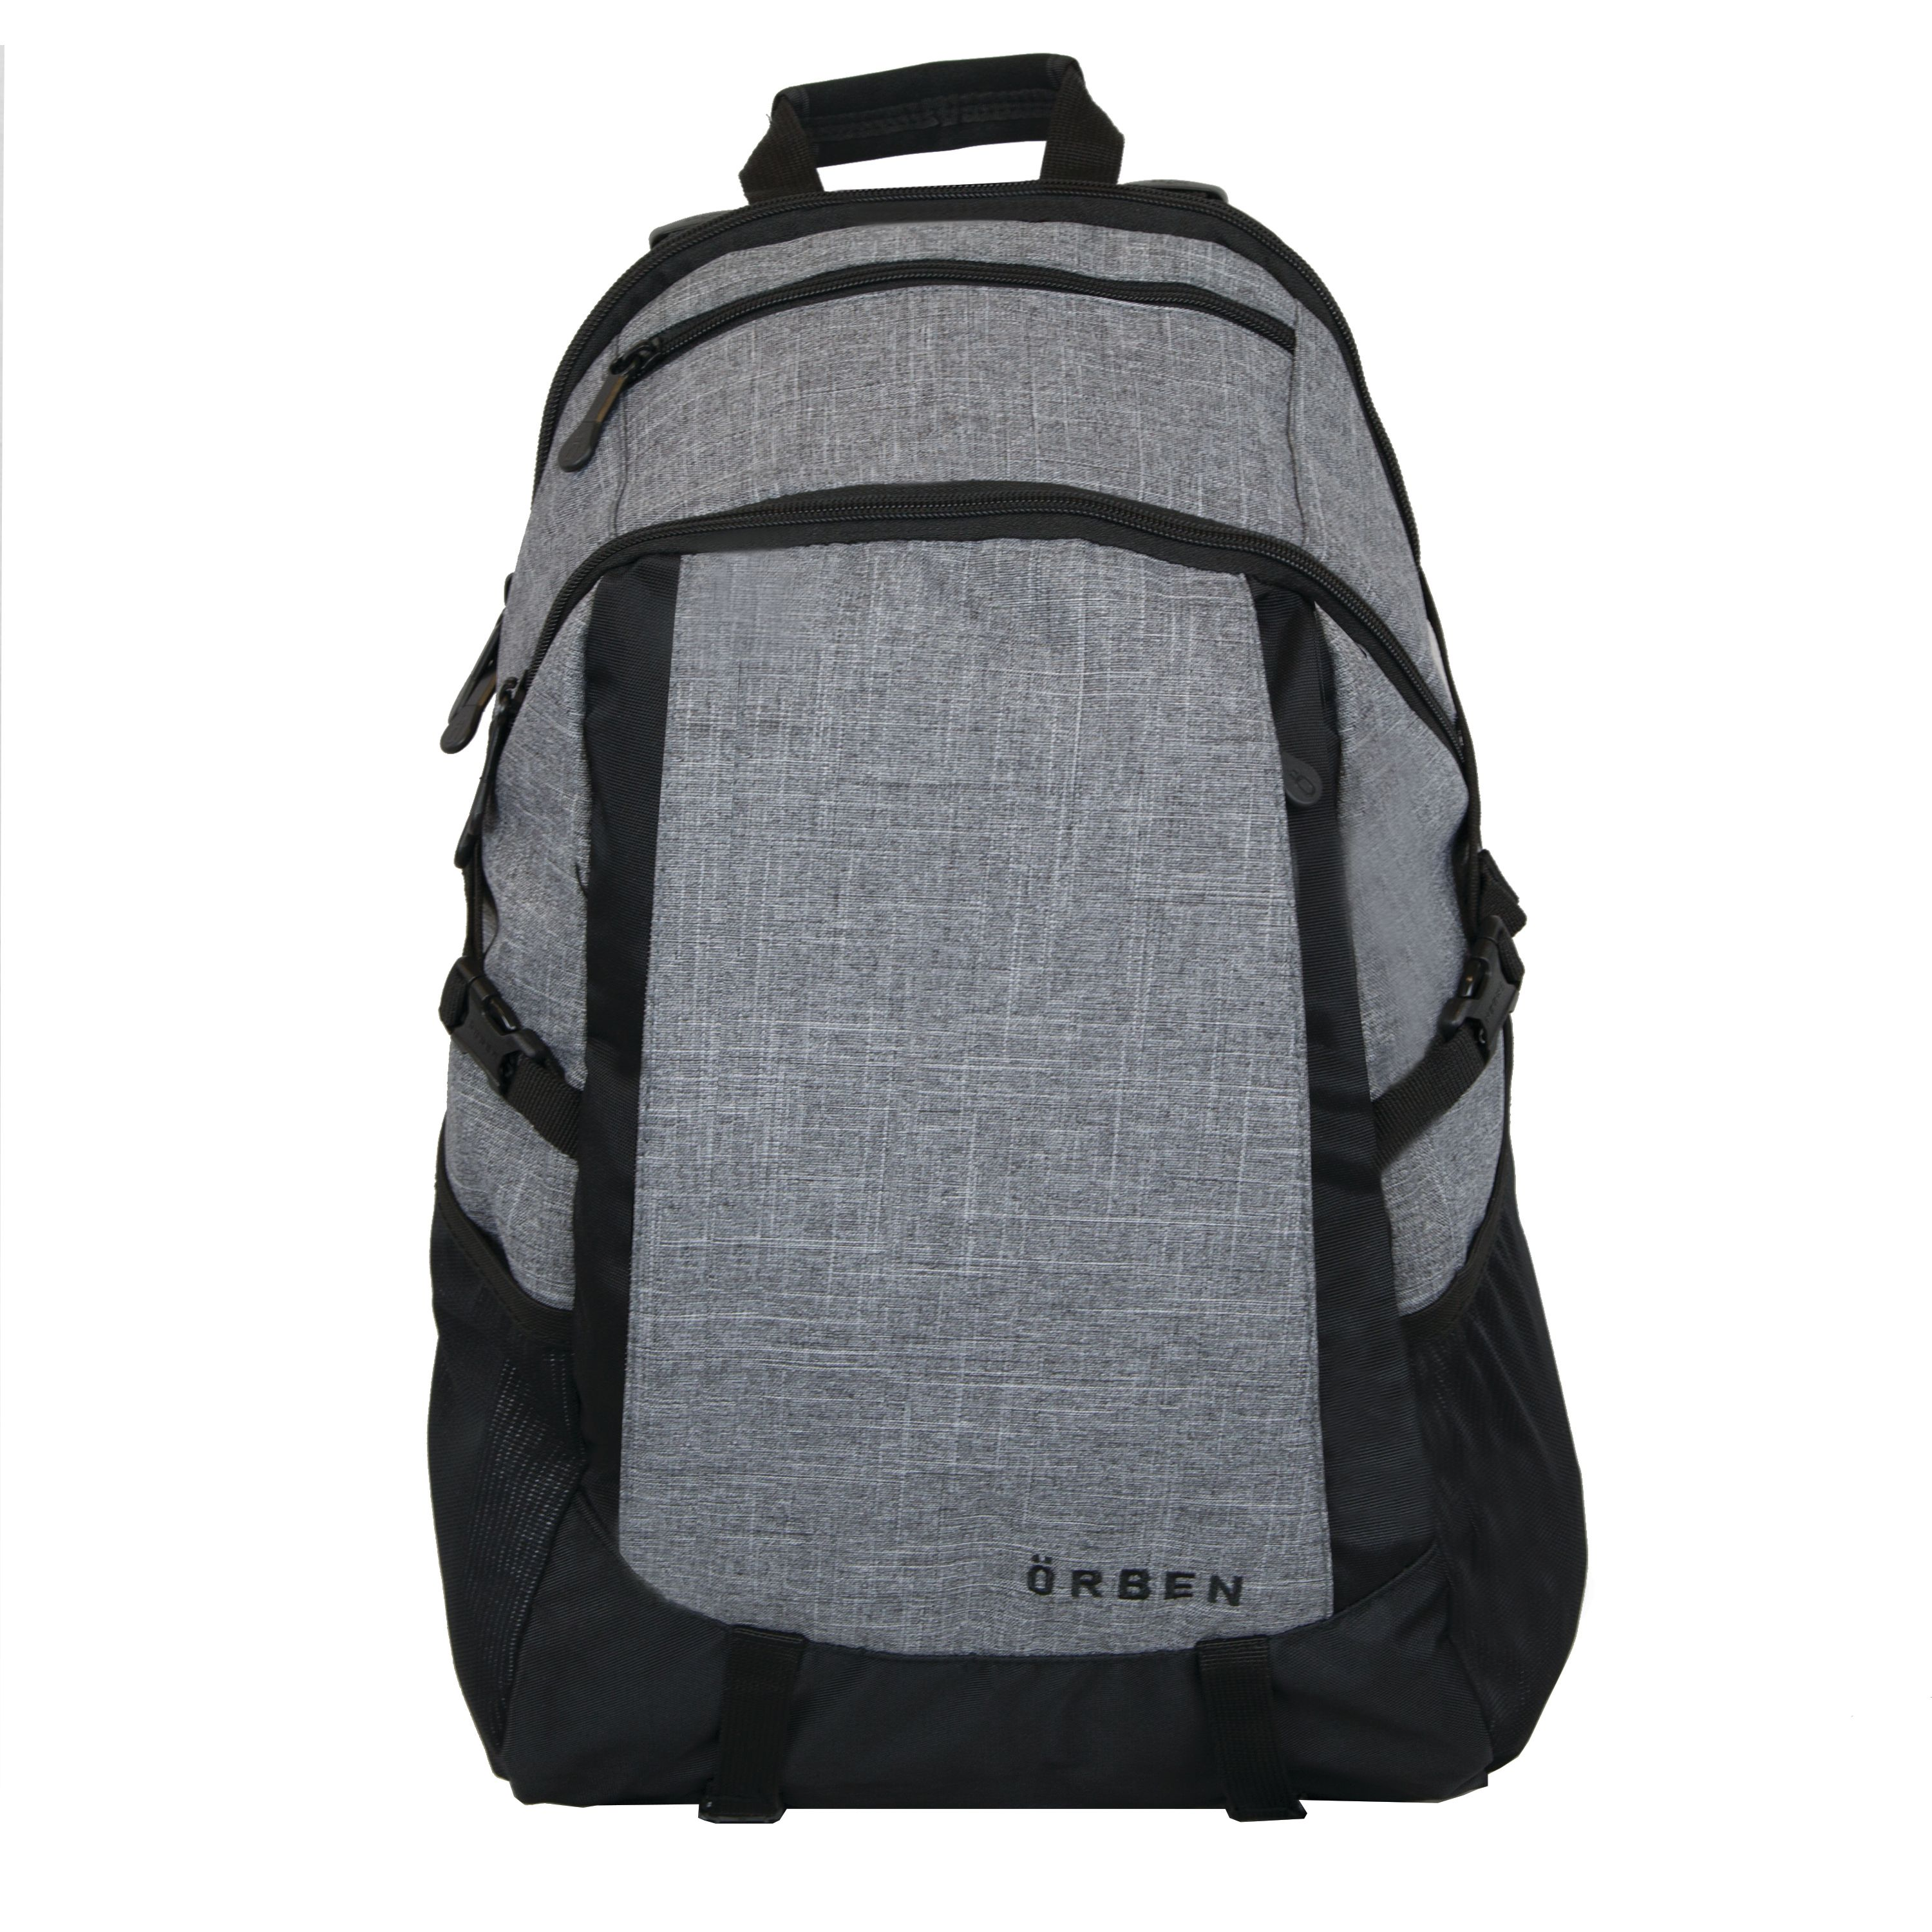 "ORBEN Versatile Daypack Travel Outdoor Bag Fits 15"" Laptop with Tablet Pocket Gray"